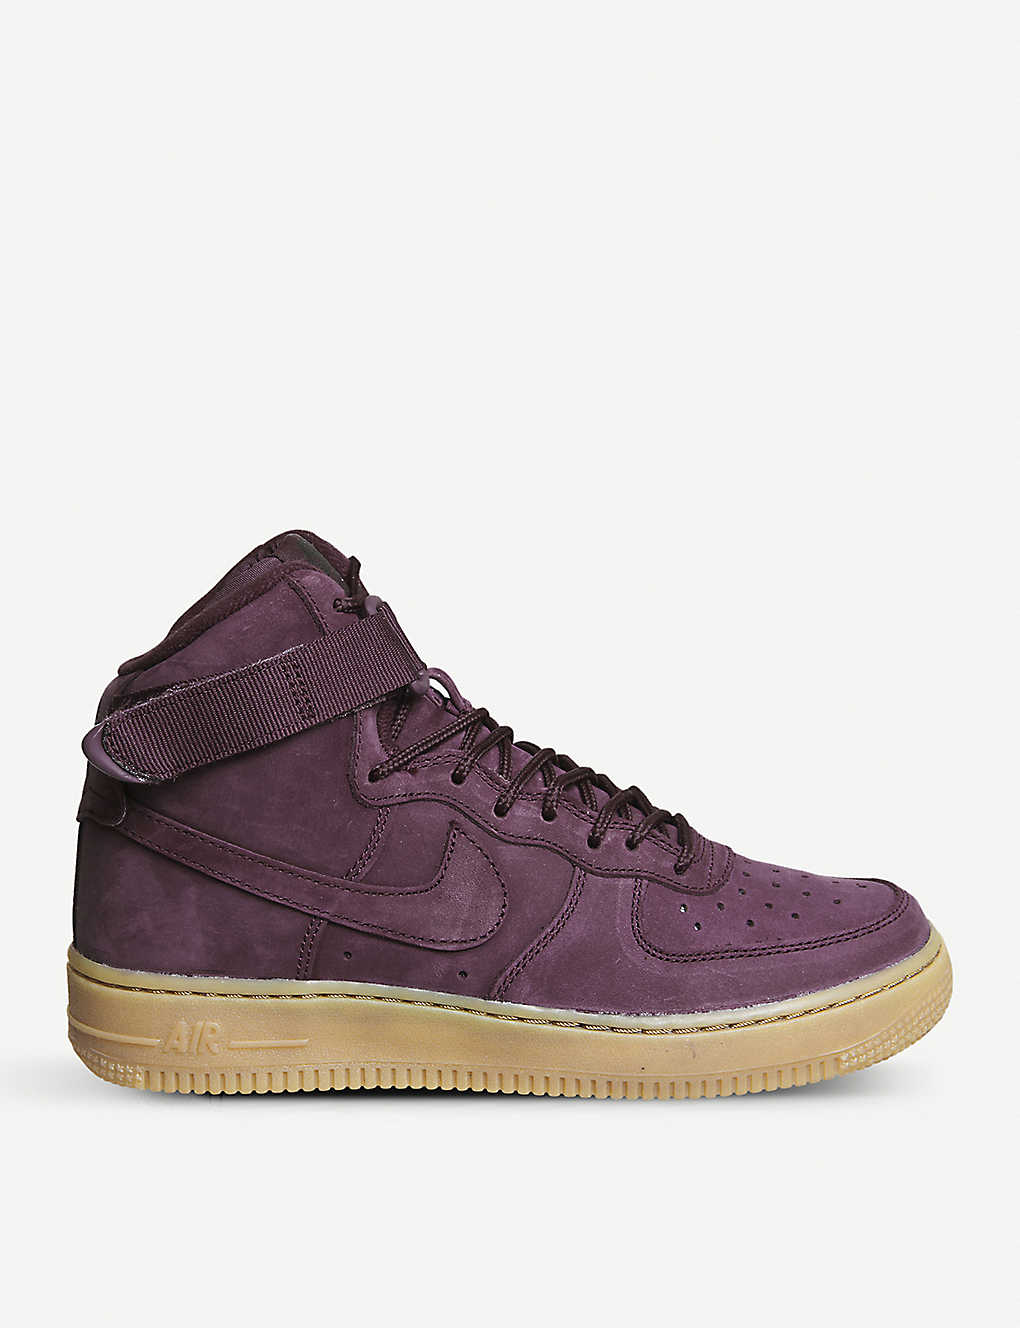 chaussures de sport accde 0680f NIKE - Air Force 1 suede high-top trainers | Selfridges.com